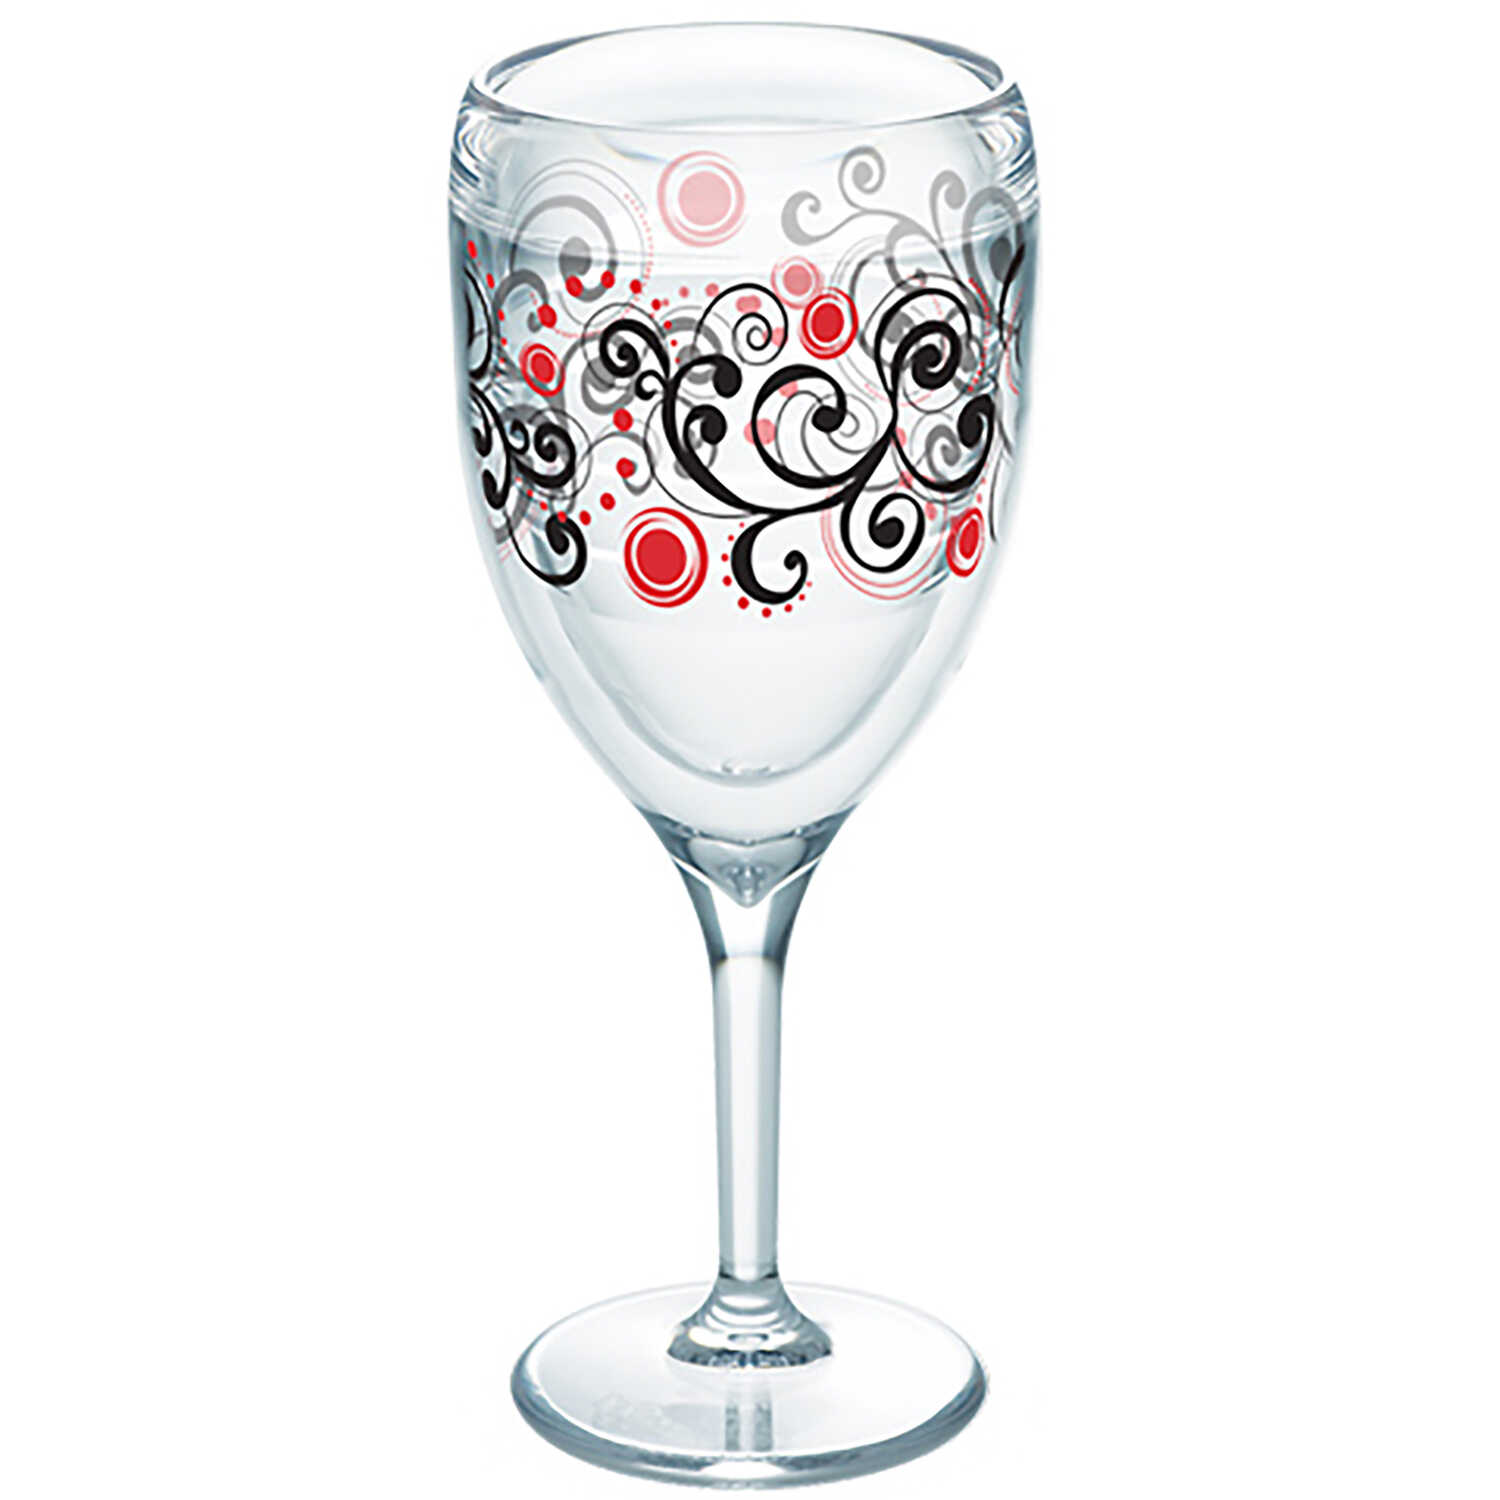 Tervis  Clear  Tritan  Berry Swirlwind  Wine Glass  BPA Free 9 oz.